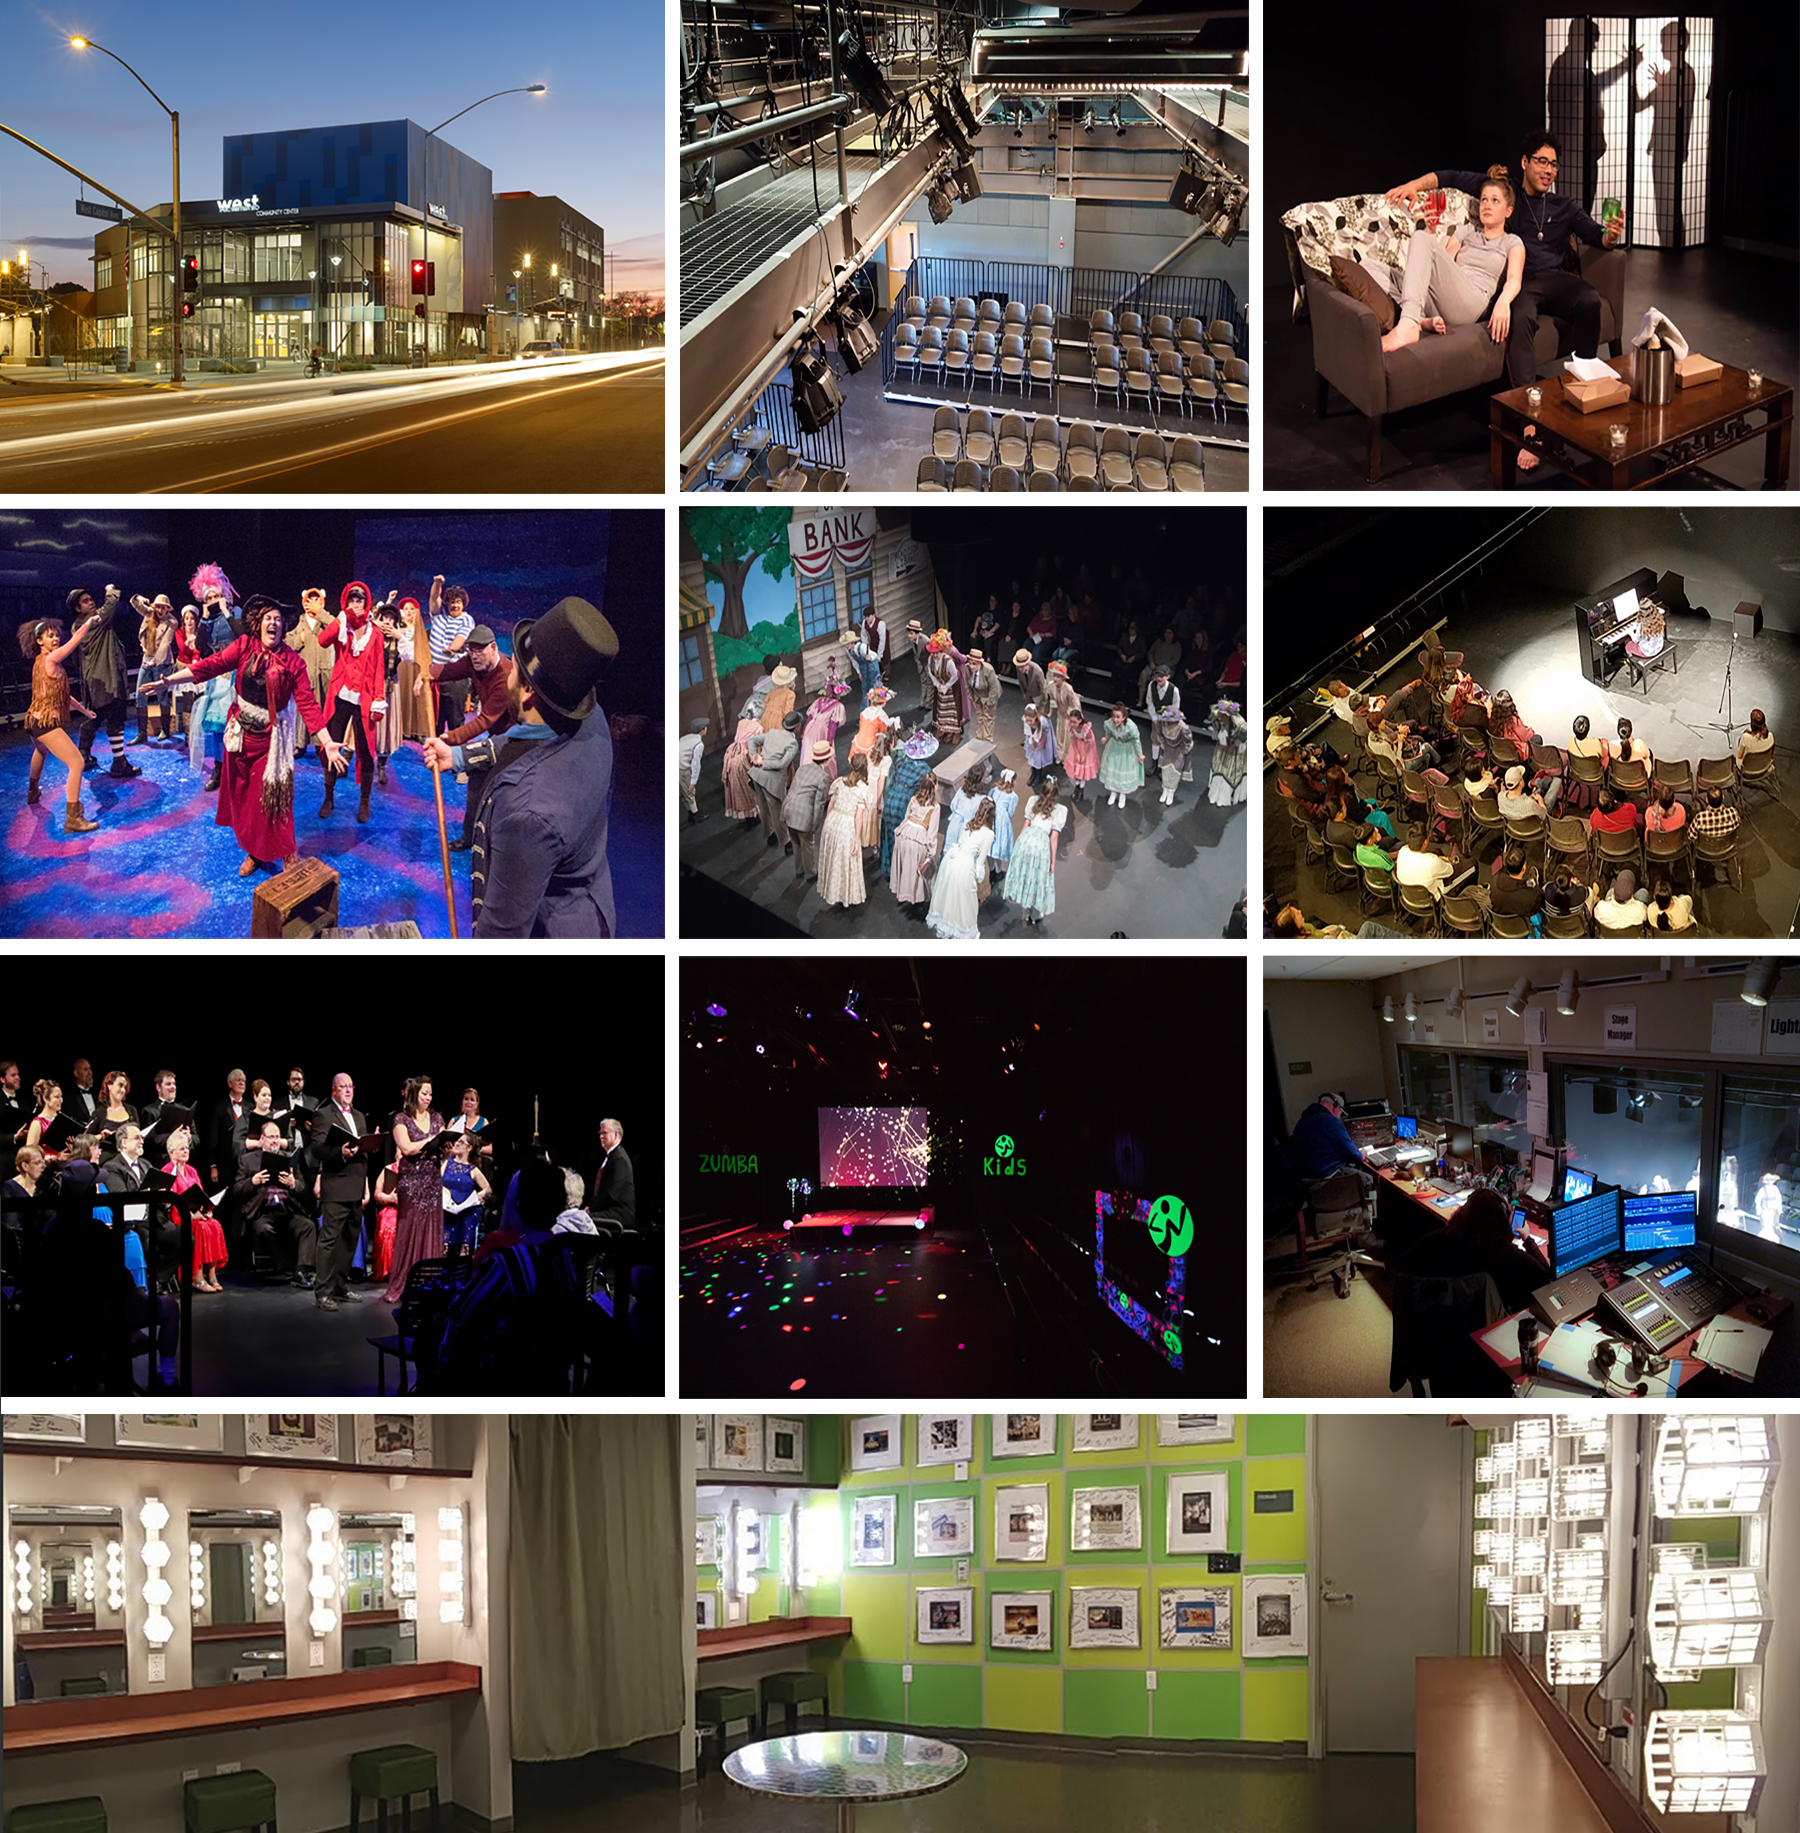 Variety of images of the theater facilities and use